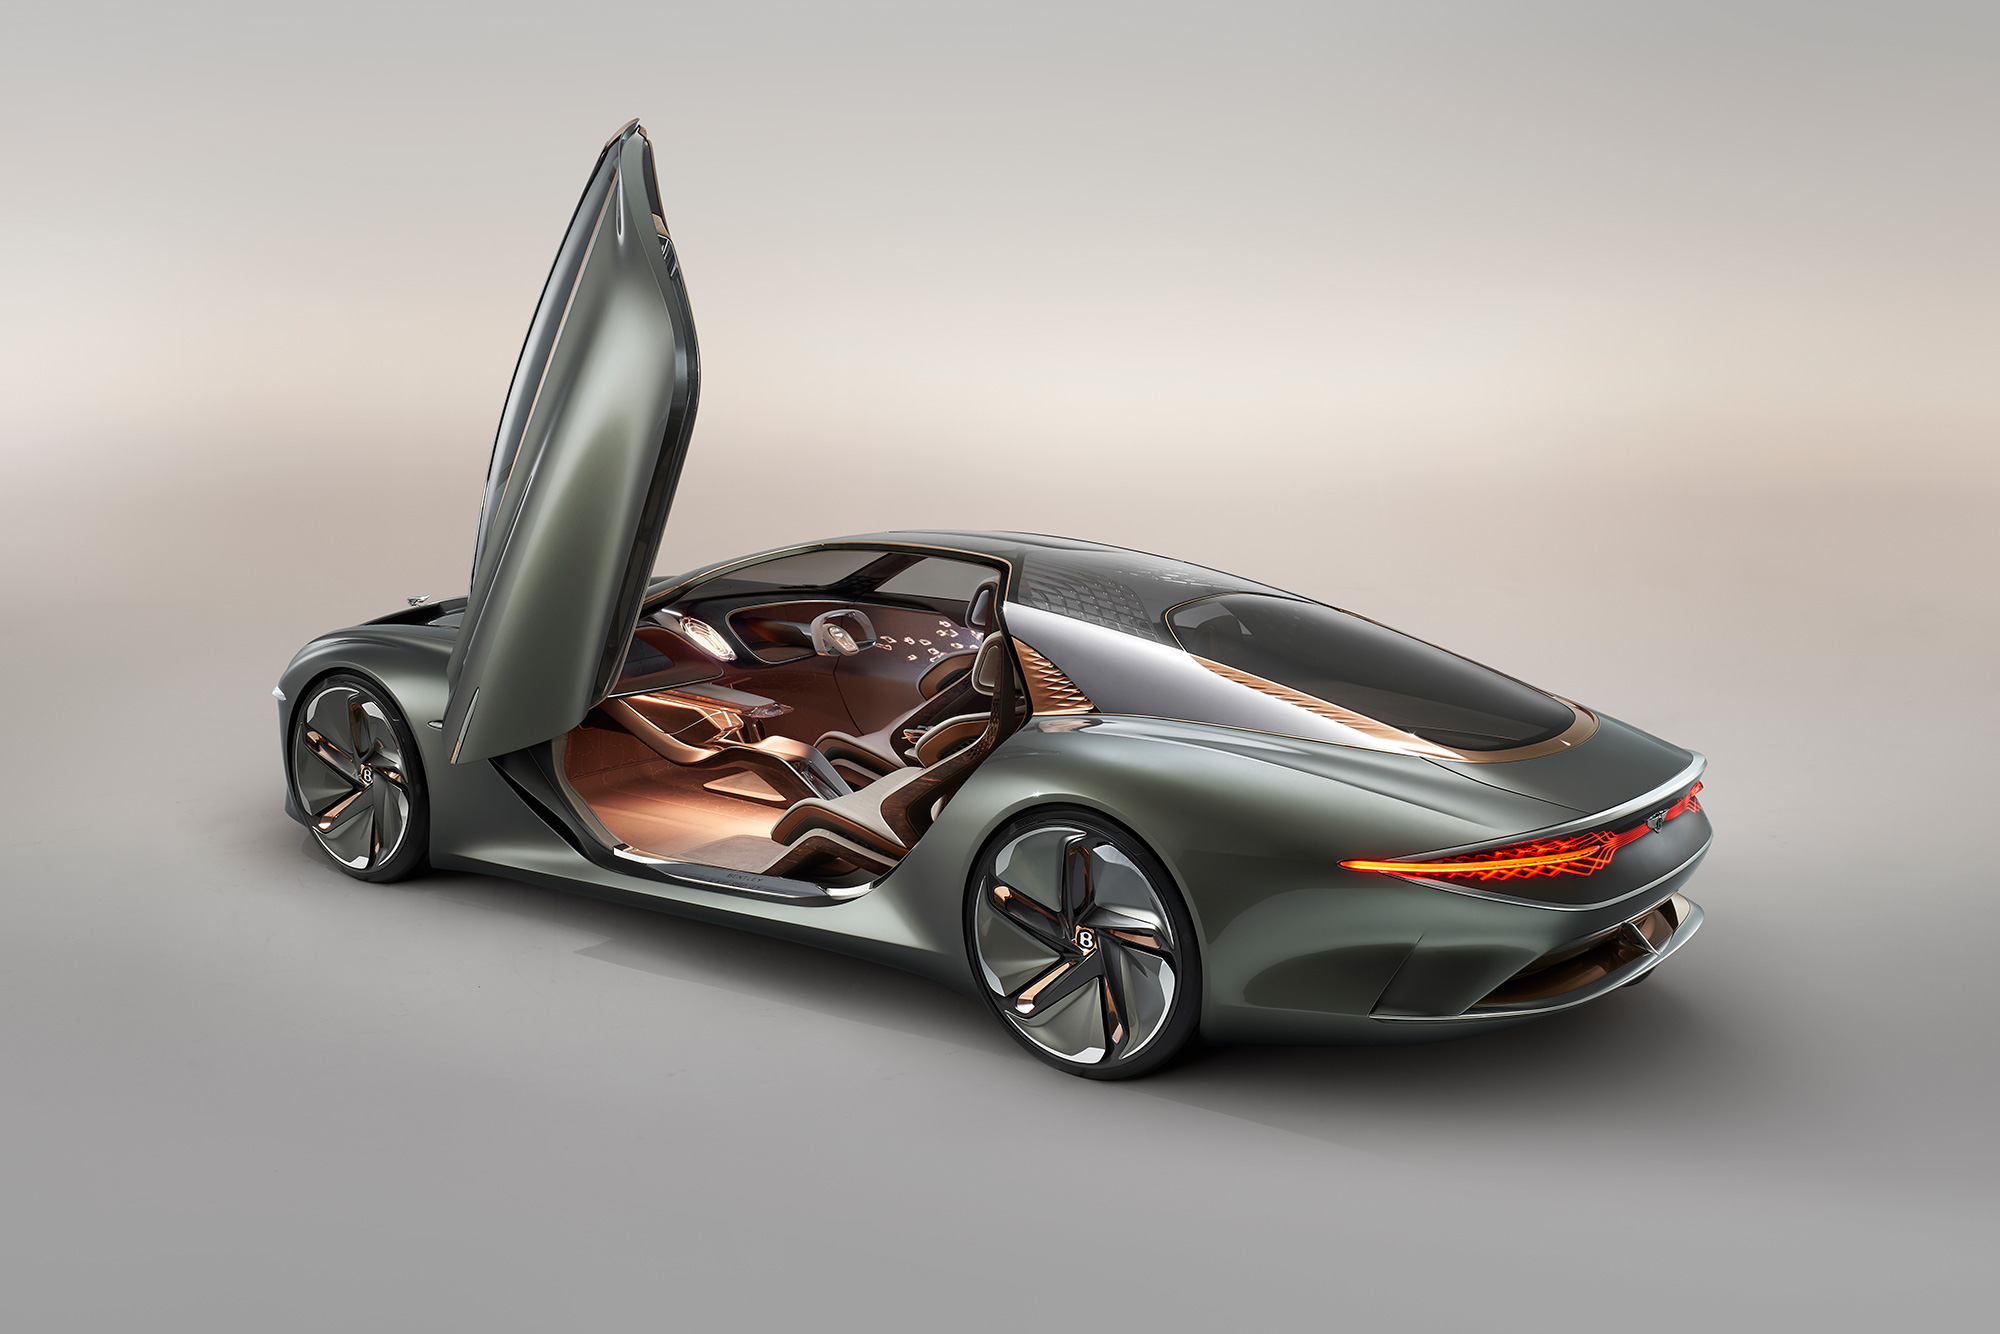 The new Bentley has been launched to coincide with the marque's centenary